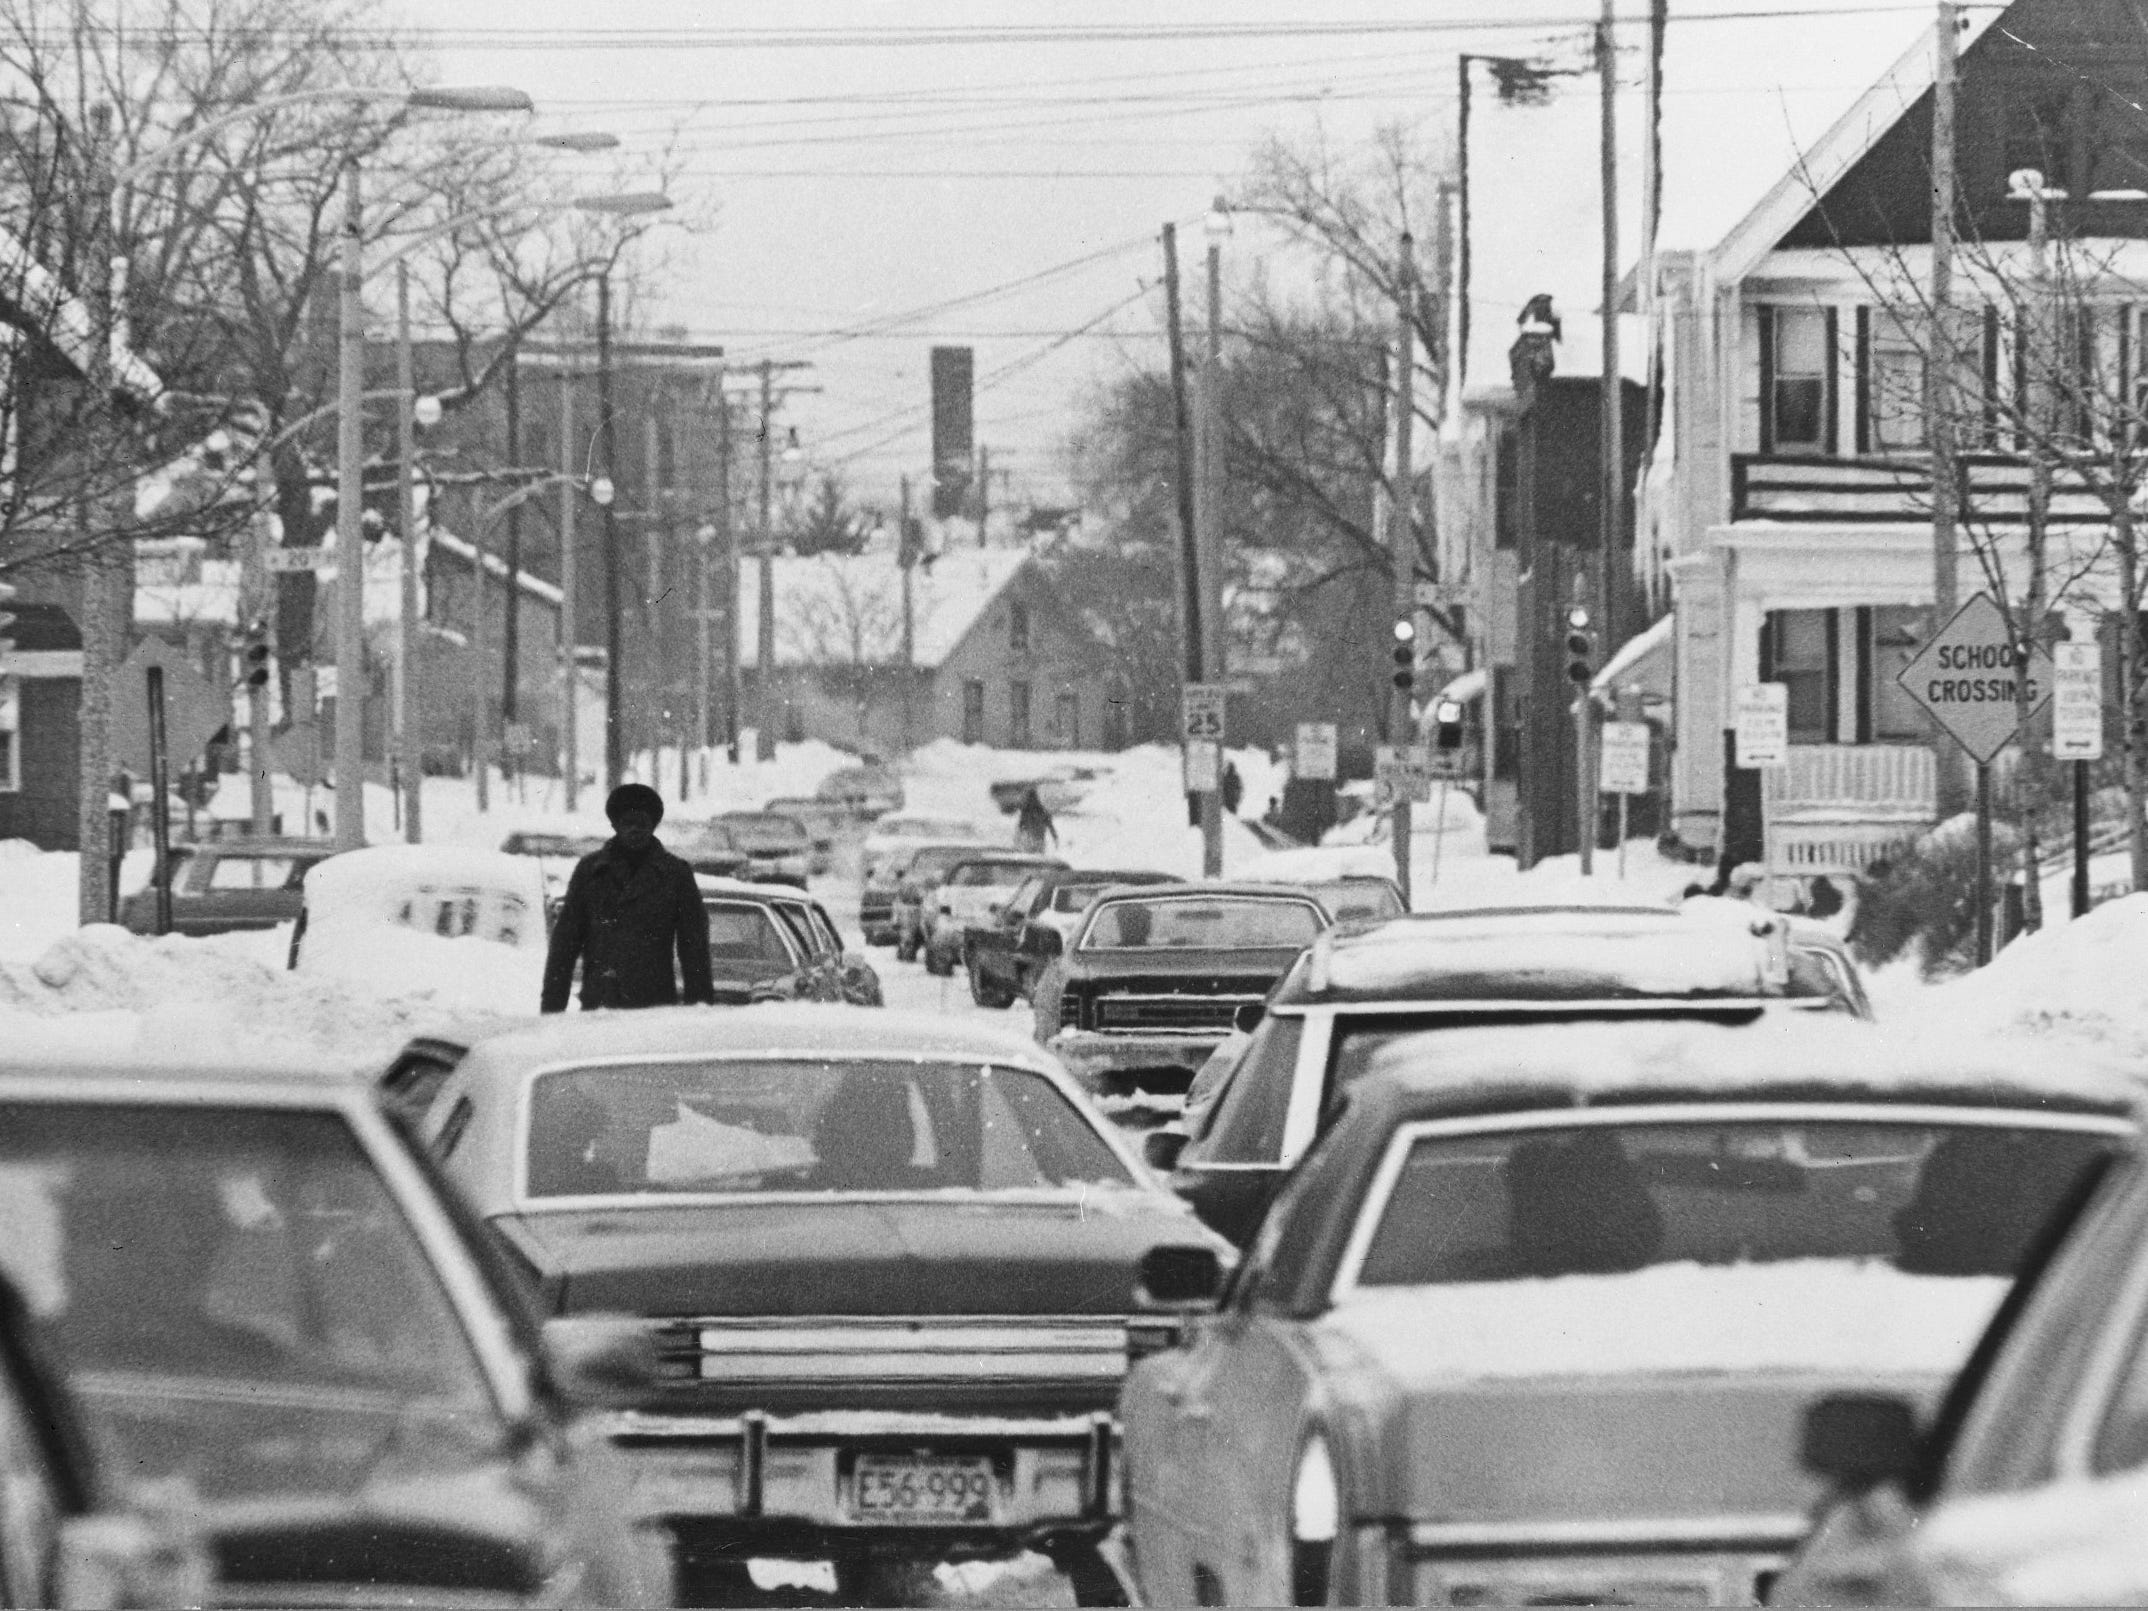 Cars and a single pedestrian try to make their way down West Meinecke Ave. at North 20th Street on Jan. 17, 1979. Milwaukee, still digging out from under its second major snowstorm in two weeks, wrestled with streets narrowed by unplowed snowdrifts and snow-buried cars into March of that year. This photo was published in the Jan. 18, 1979, Milwaukee Sentinel.